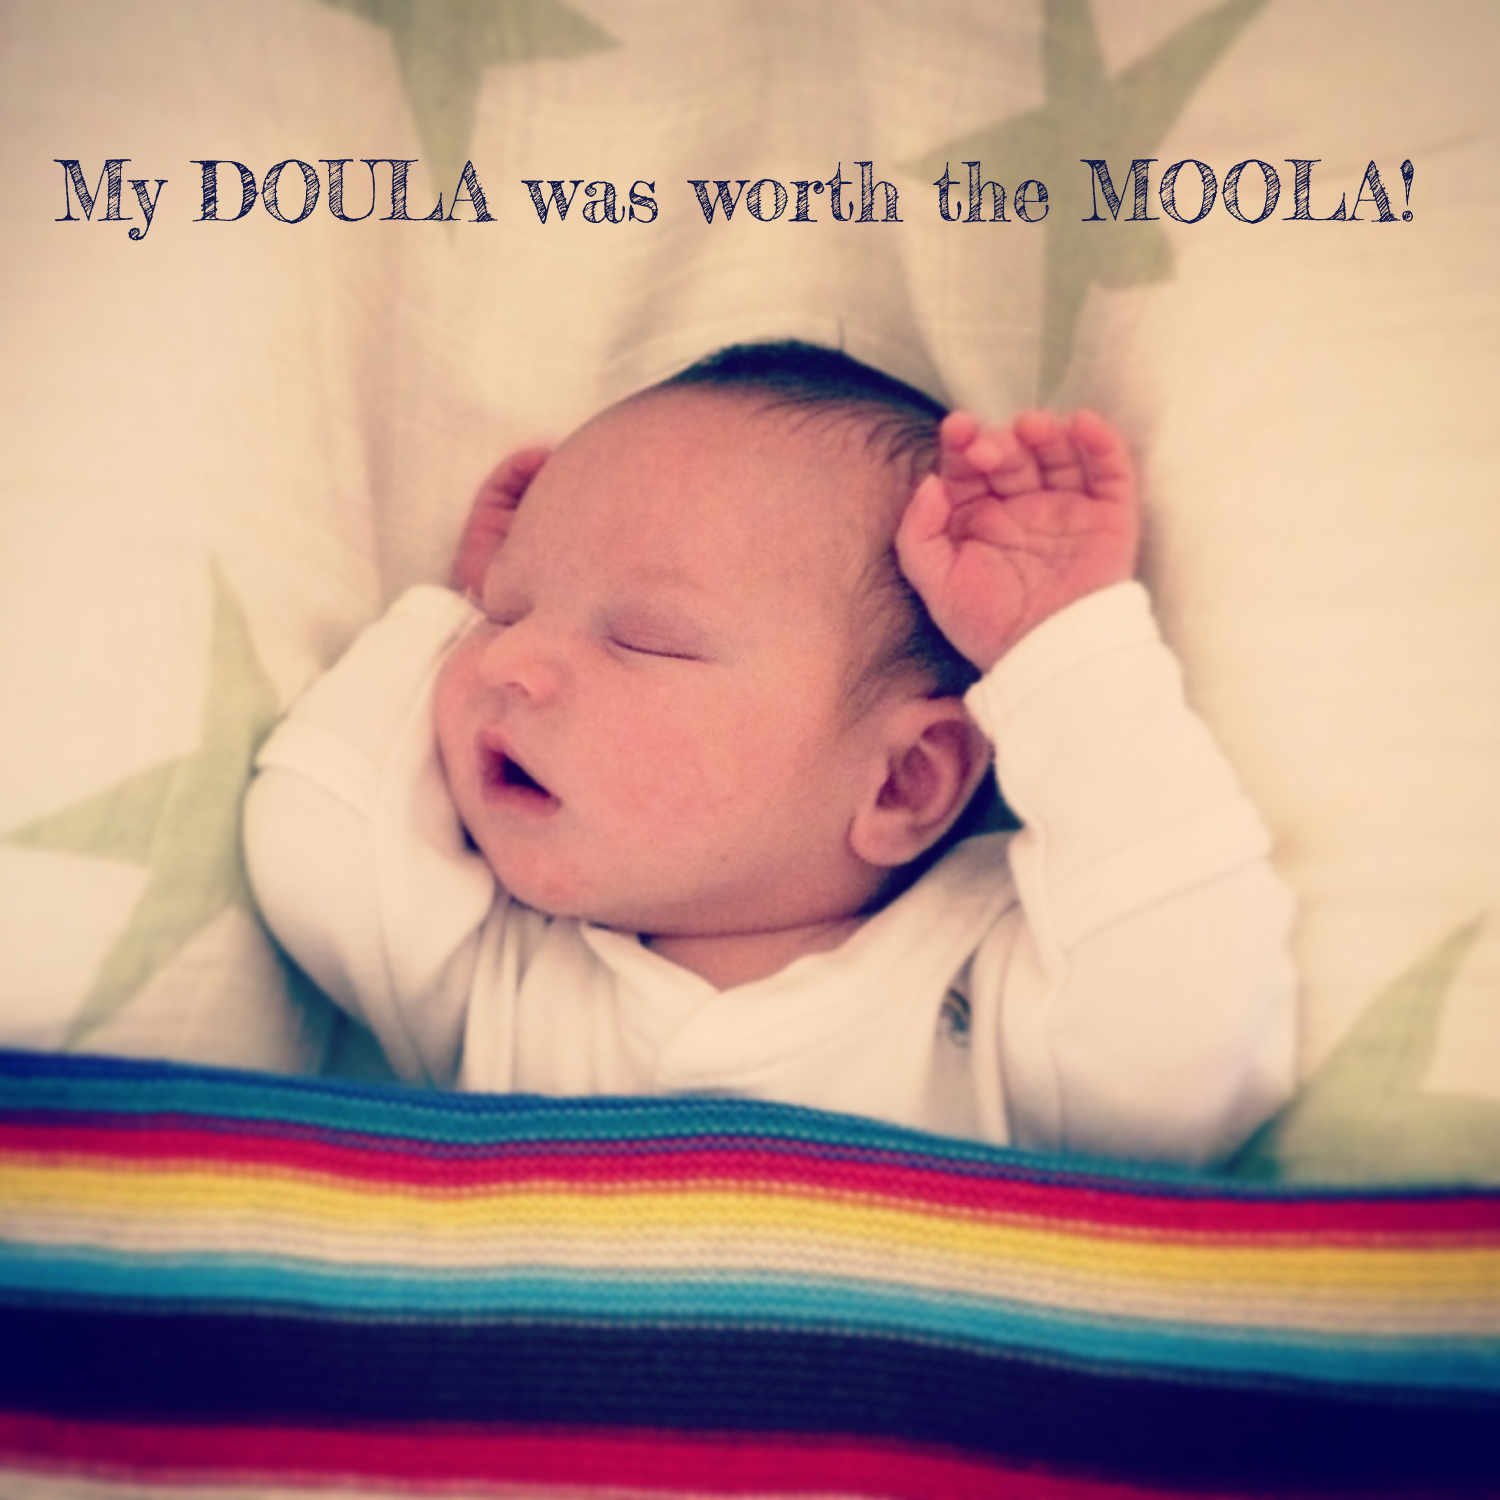 Sleeping baby with text saying my doula was worth the moola!